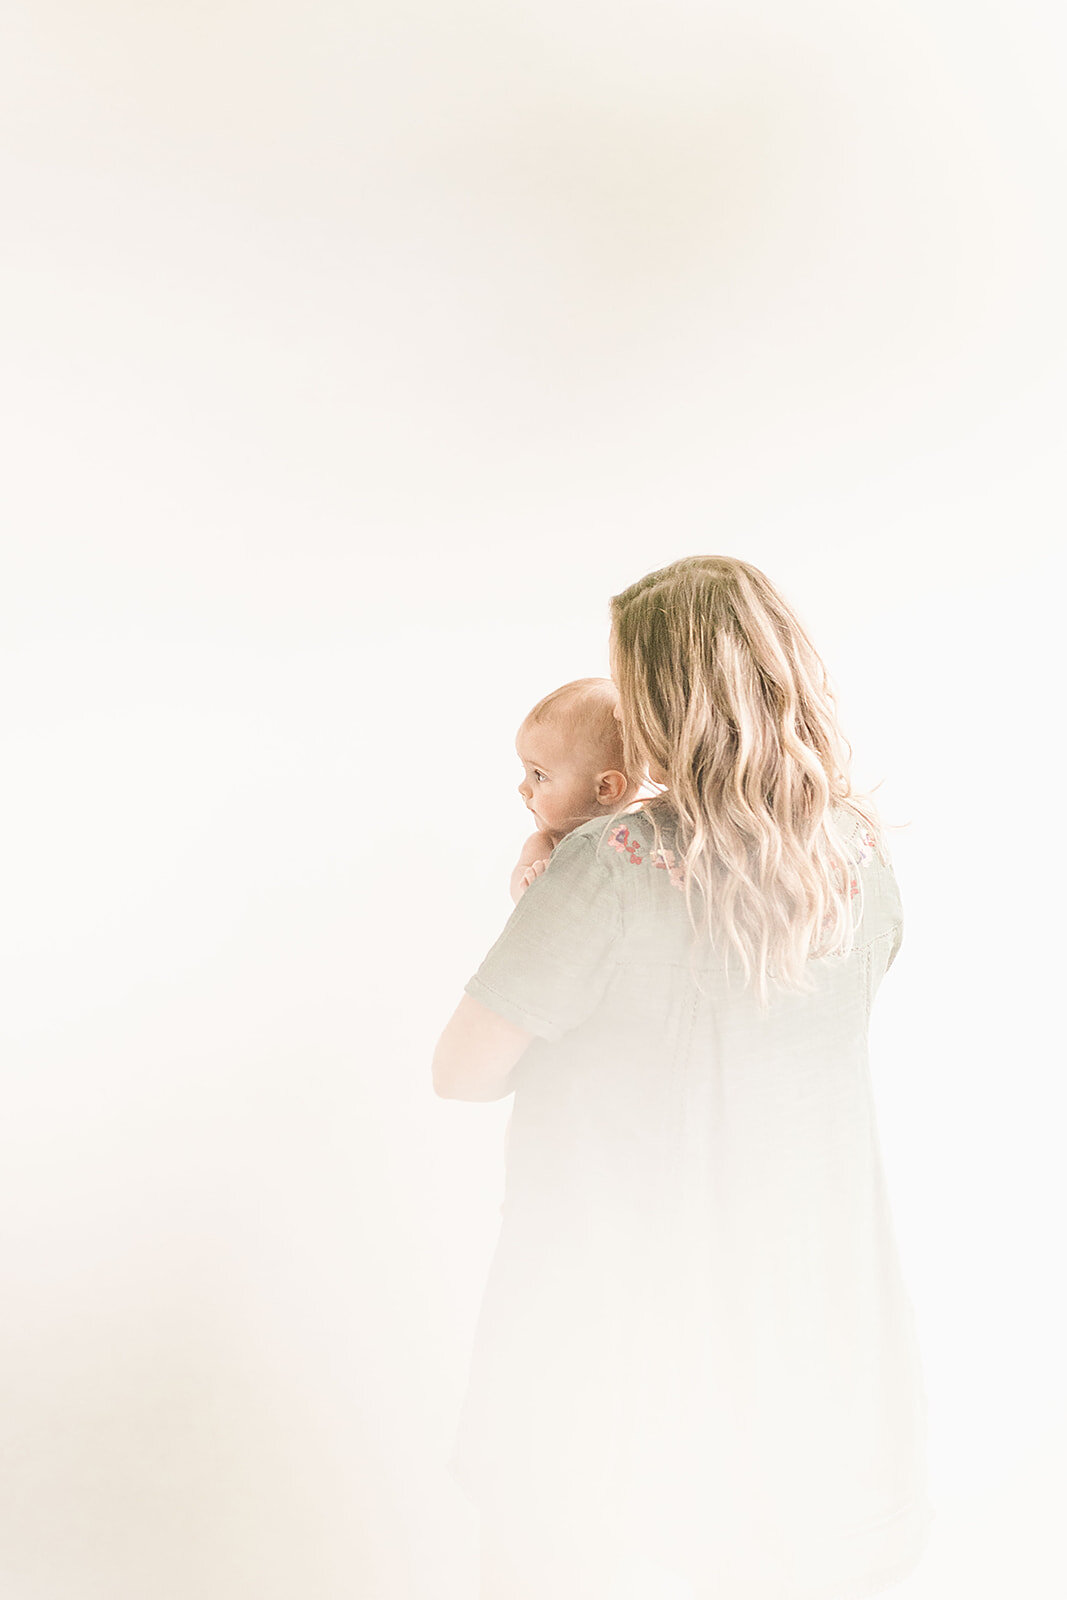 Mother_and_child_captured_in_a_natural_light_Seattle_studio_photographed_by_Chelsea_Macor_Photography-5.jpg